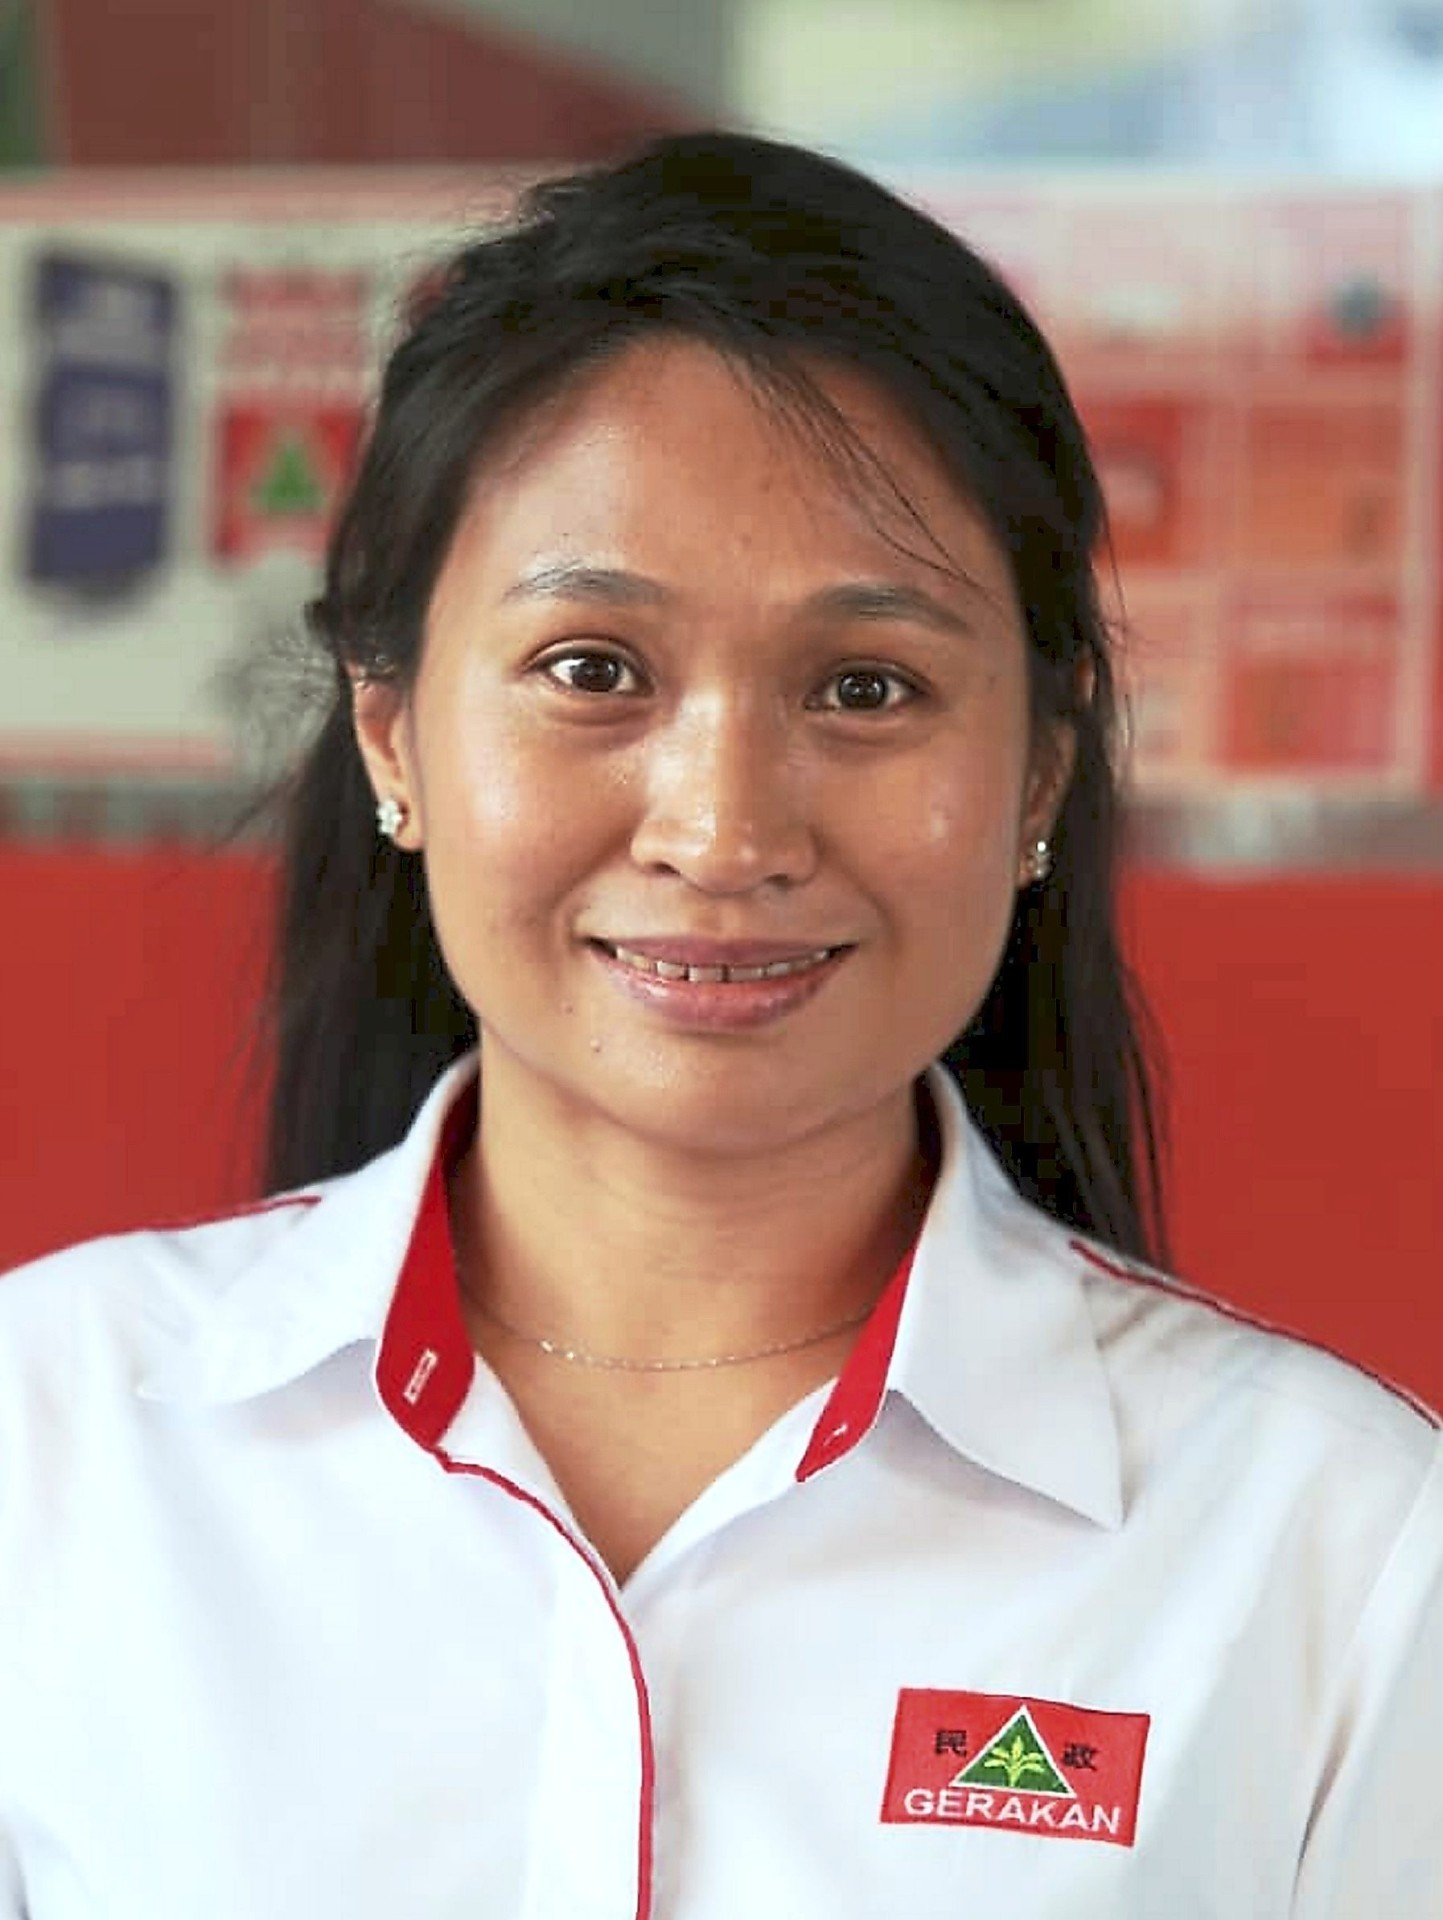 Wendy: Is candidate for Gerakan.